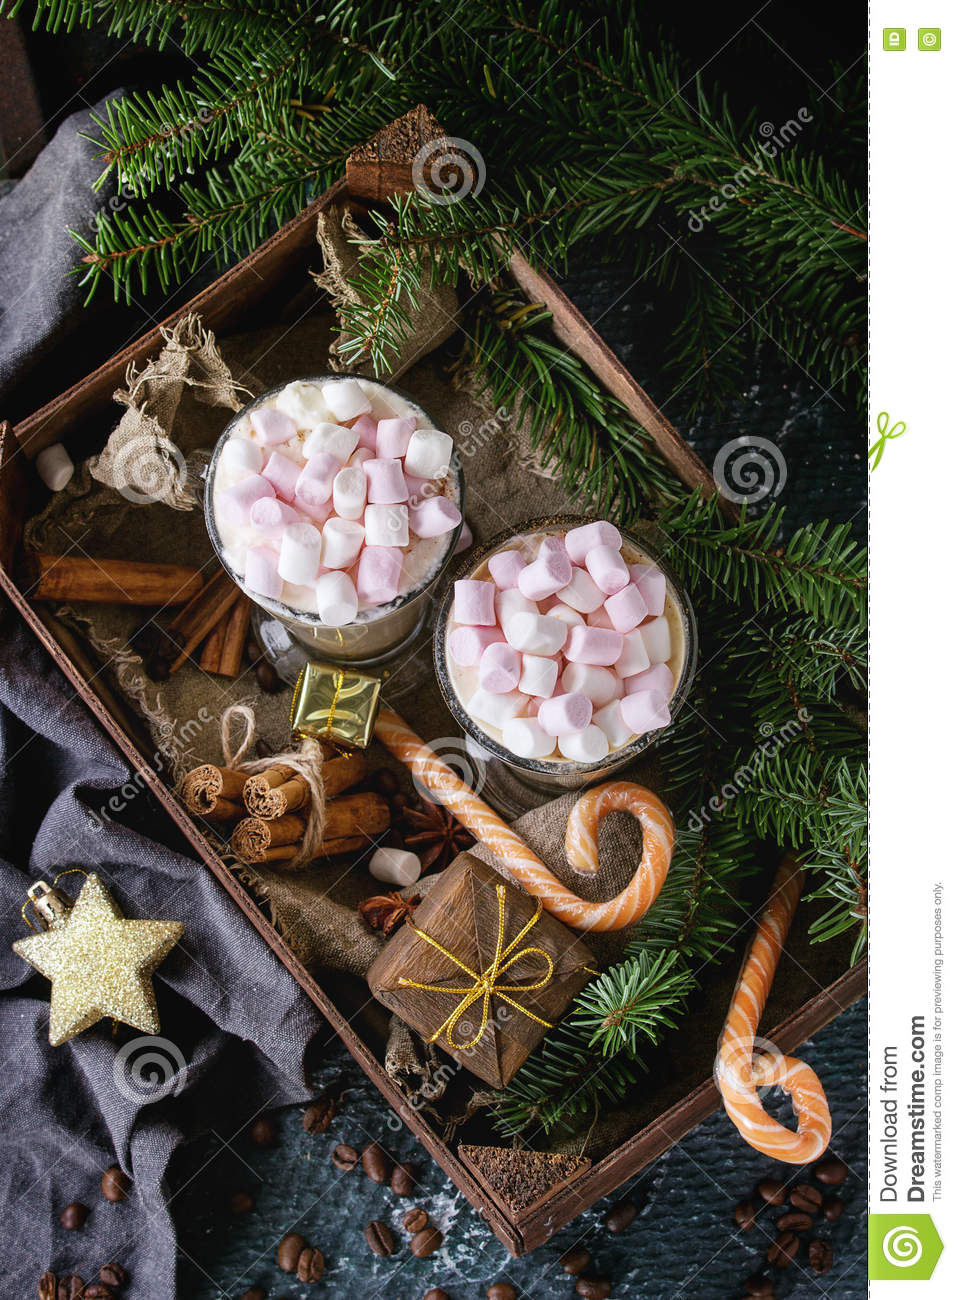 Christmas Cafe Latte With Marshmallow Stock Image - Image of tree, cocoa: 81080809